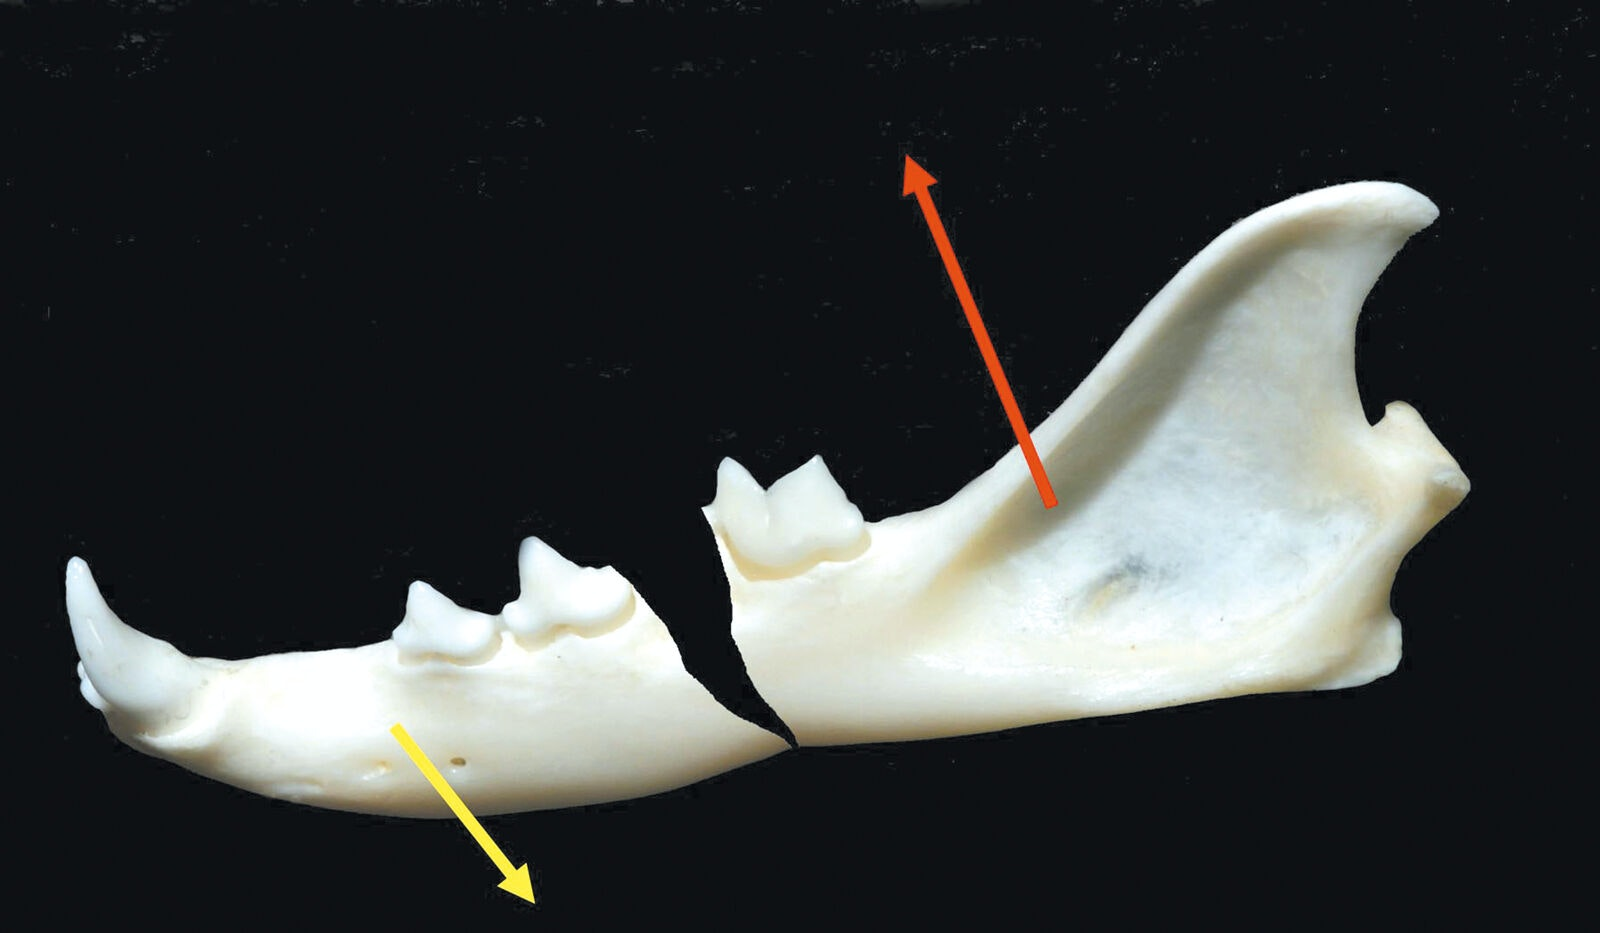 Figure 3. Fracture of the body of the mandible; the yellow arrow shows the direction of pull by muscles that open the jaw; the red arrow shows the direction of pull by muscles that close the jaw. Gaping of the fracture line and poor alignment.